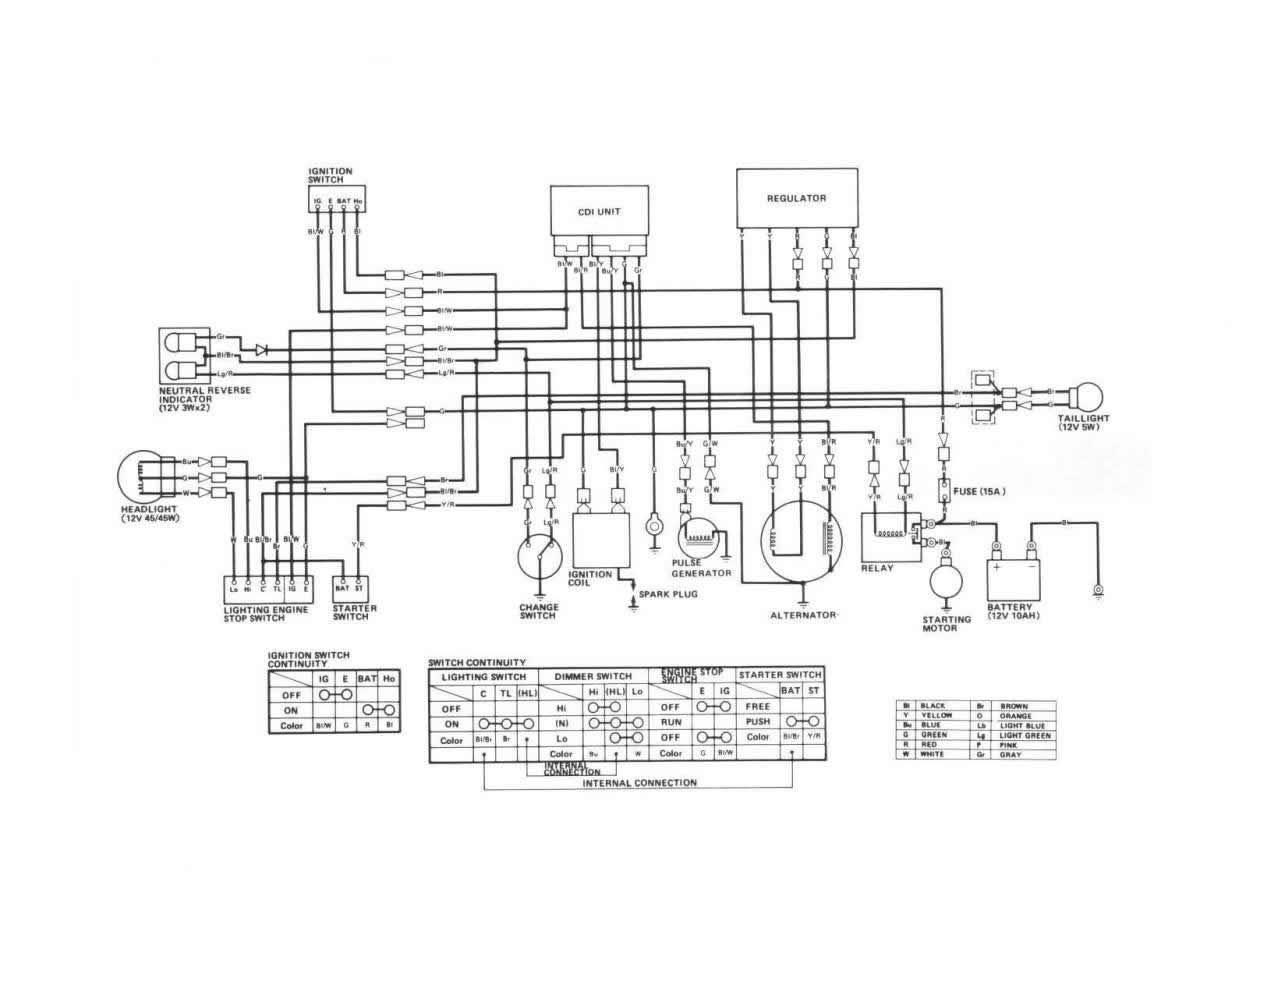 Carter Talon Engine Wiring Diagram Wiring Diagram